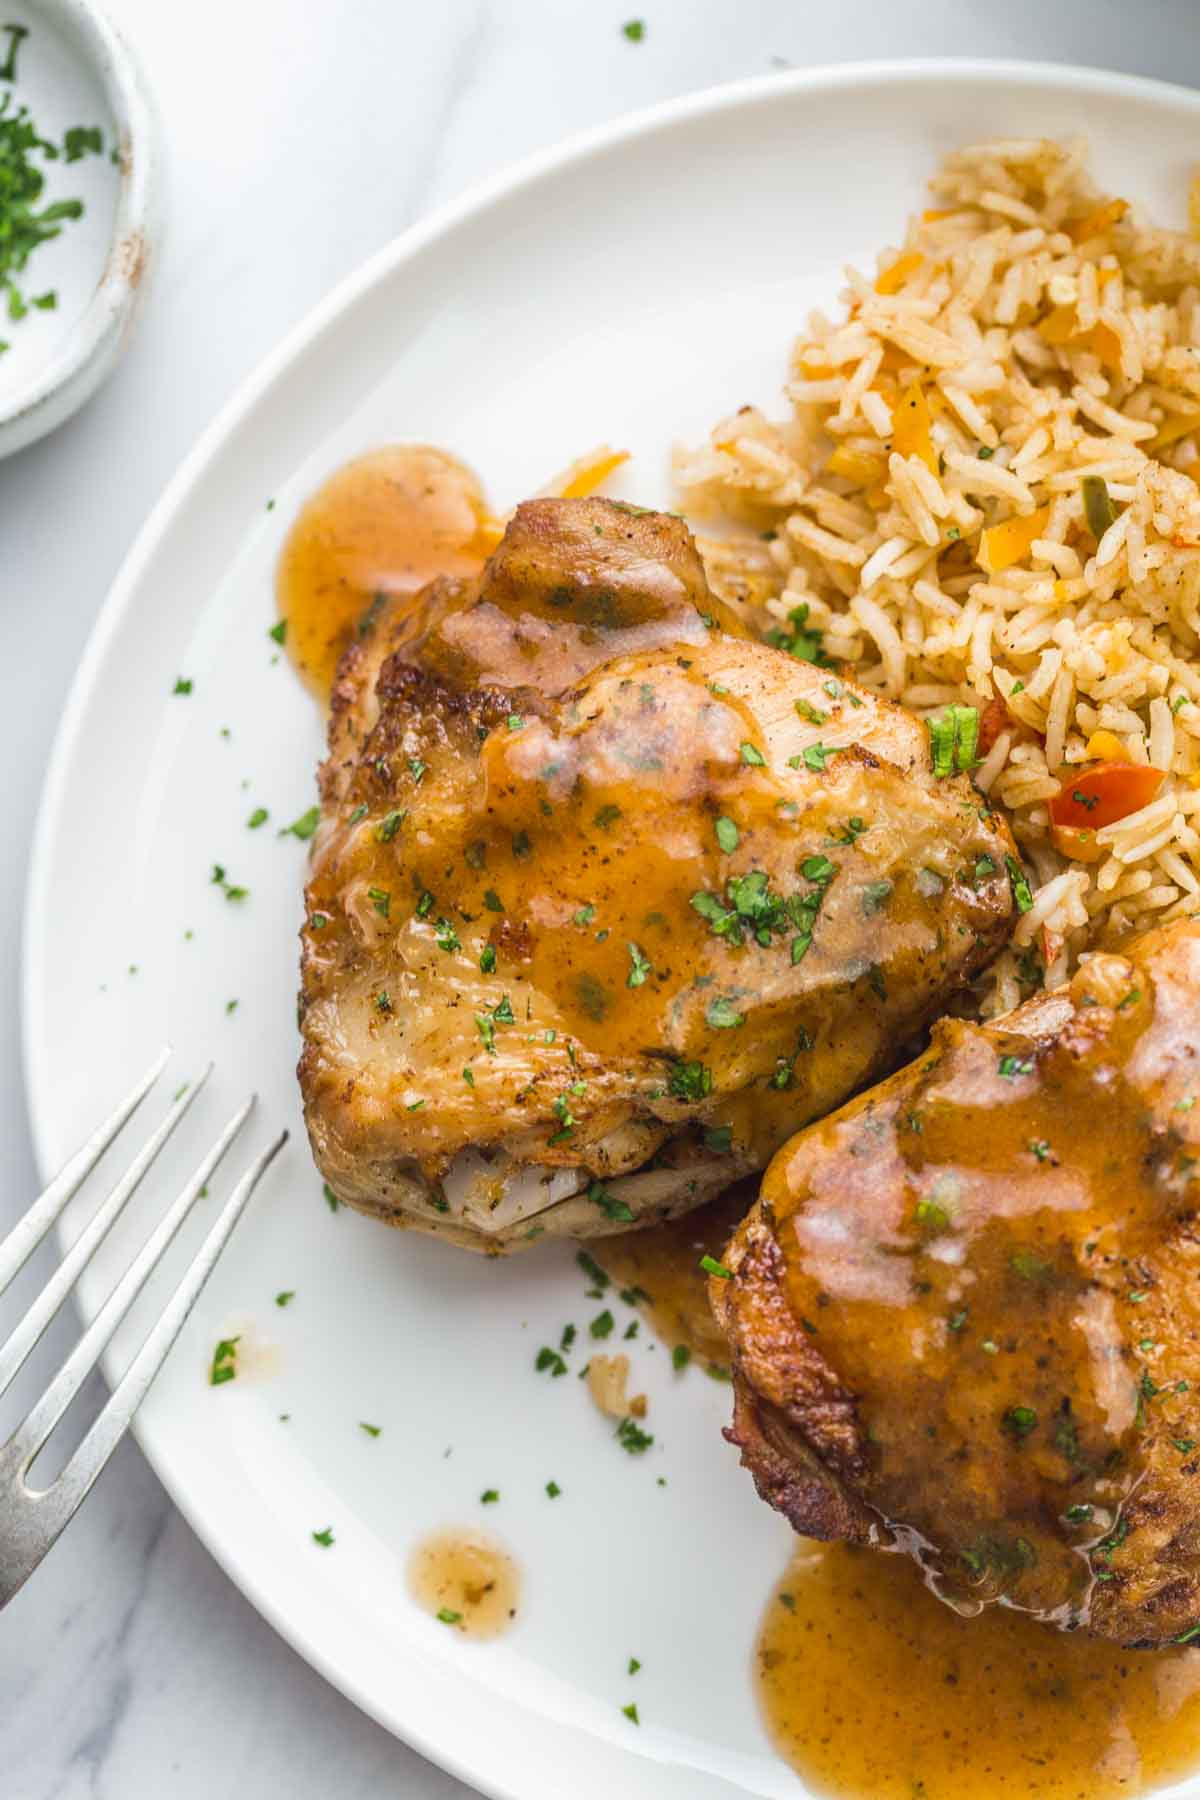 Chicken thighs served with rice, and gravy.